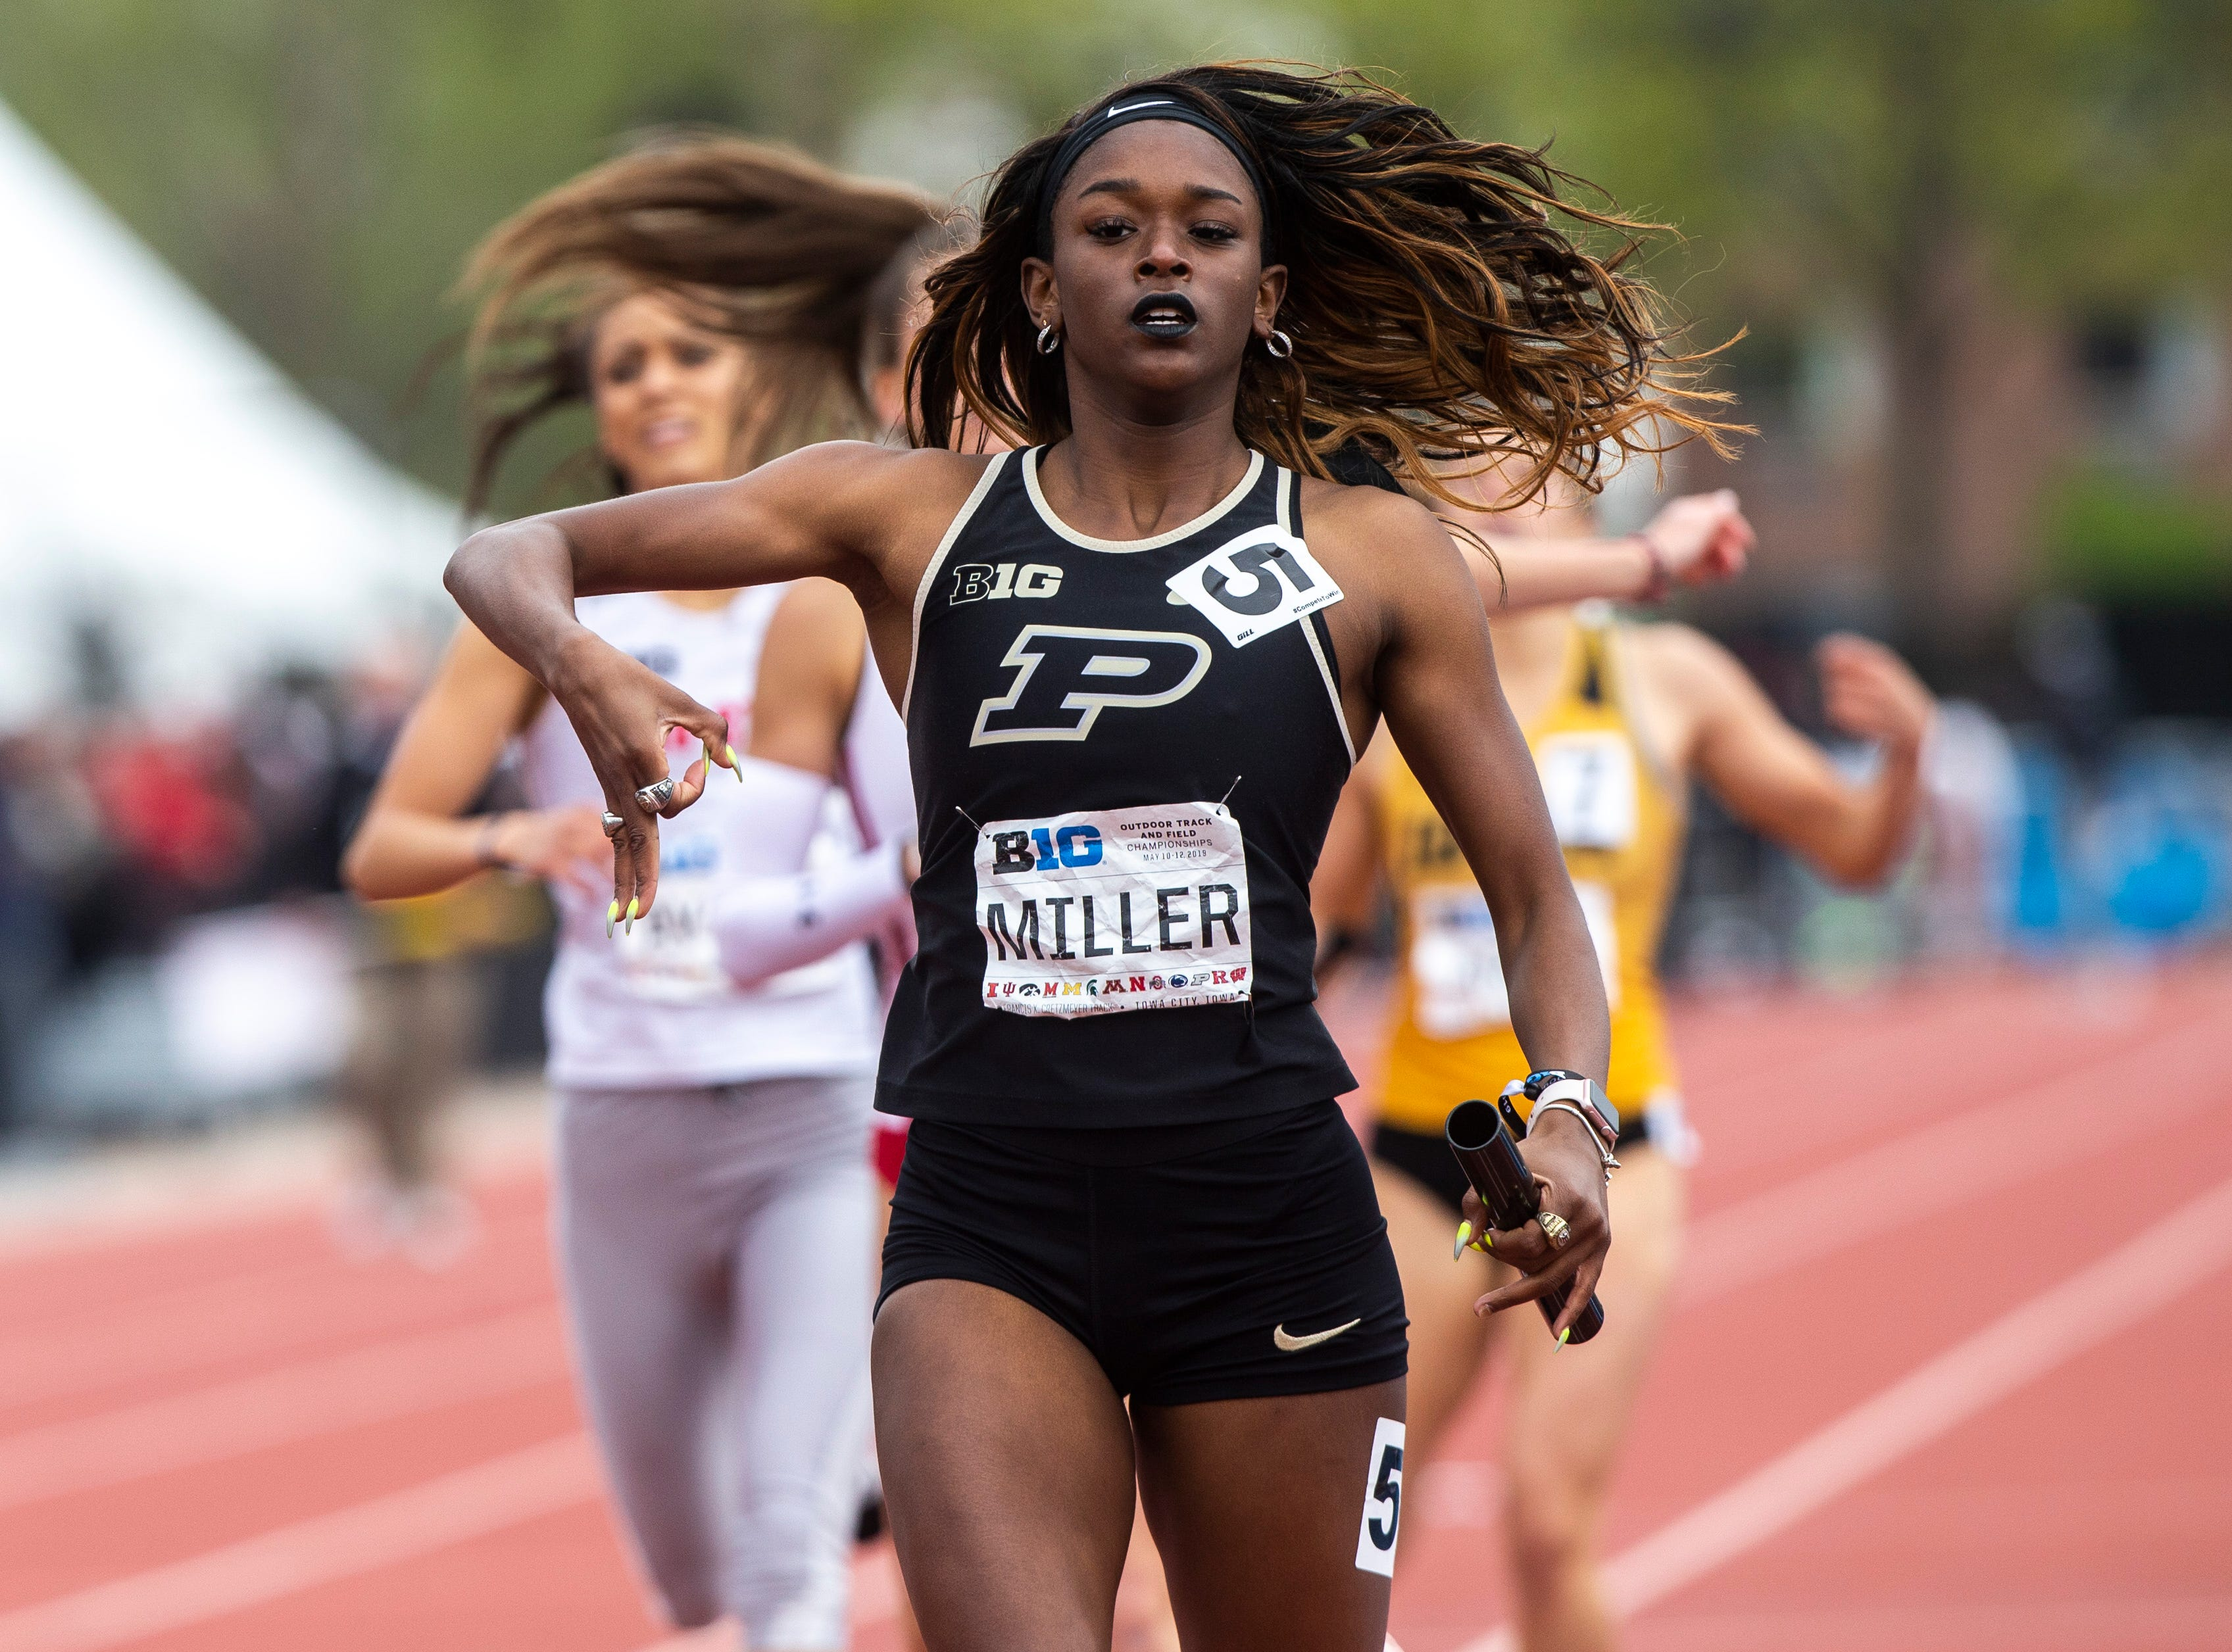 Purdue's Samara Miller celebrates while crossing the finish line in the 4x400 meter relay during the final day of Big Ten track and field outdoor championships, Sunday, May 12, 2019, at Francis X. Cretzmeyer Track on the University of Iowa campus in Iowa City, Iowa. Purdue finished first, with a time of 3:36.63